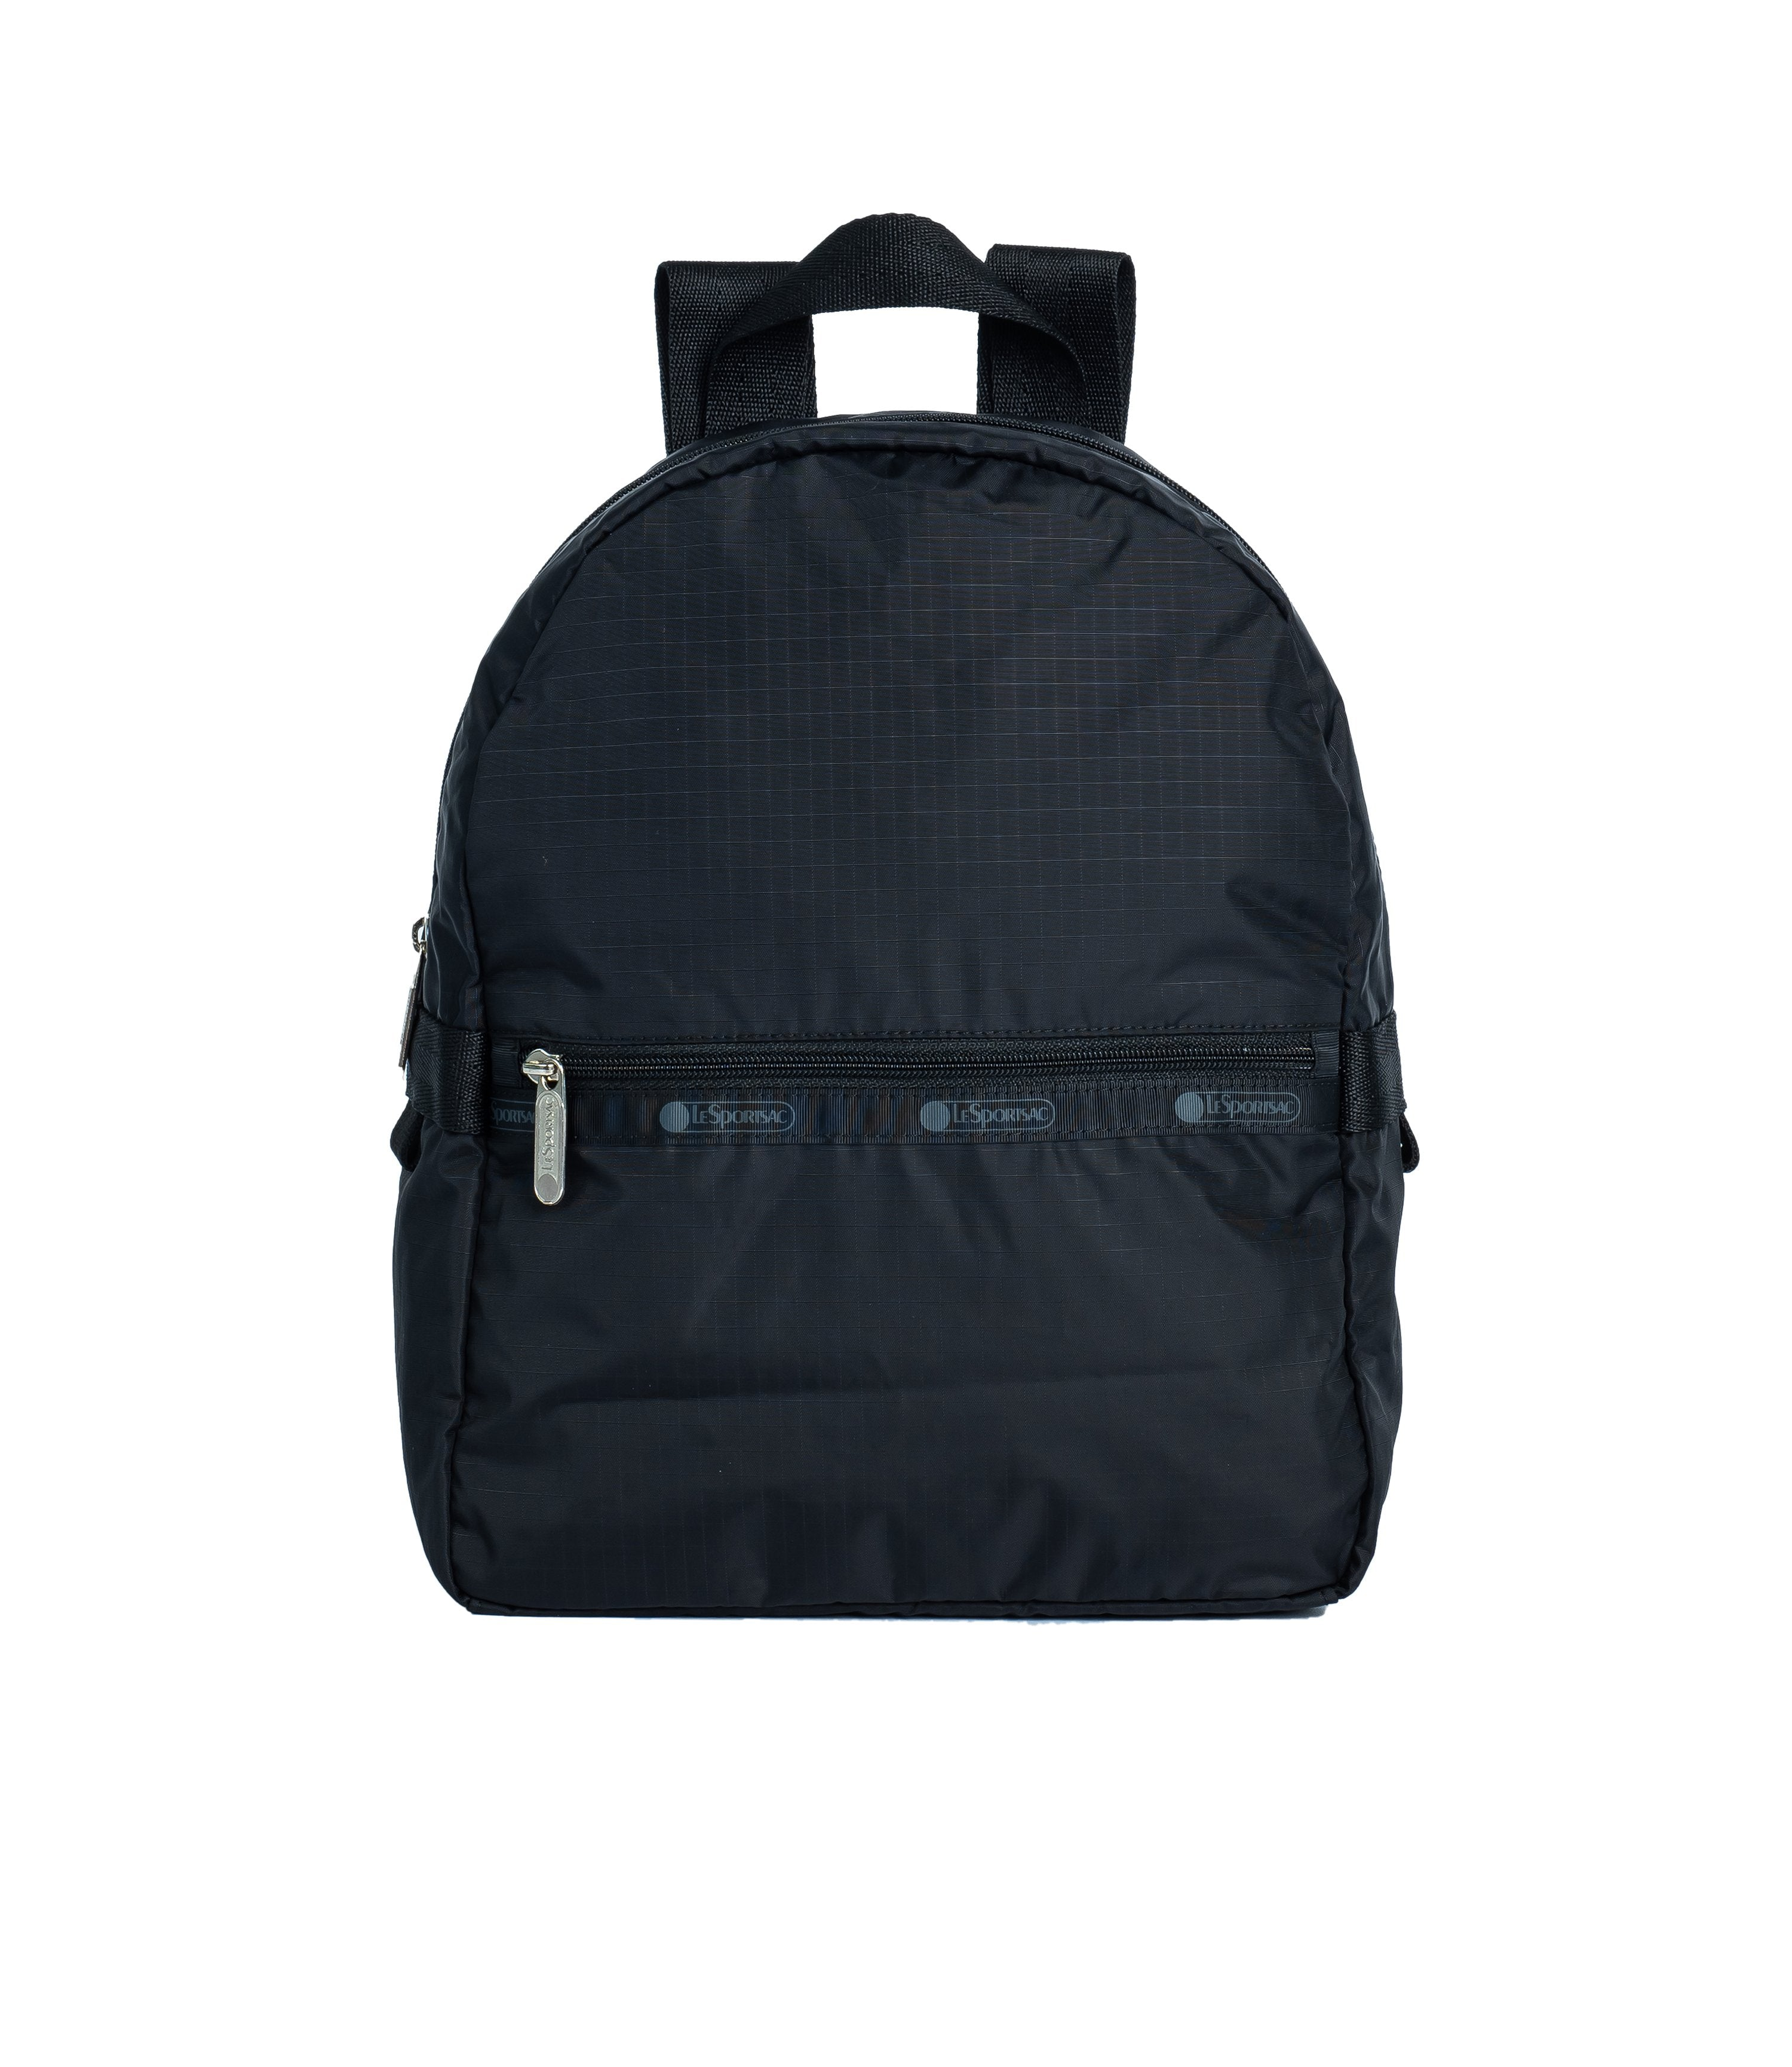 LeSportsac - Backpacks - Small Carrier Backpack - Black